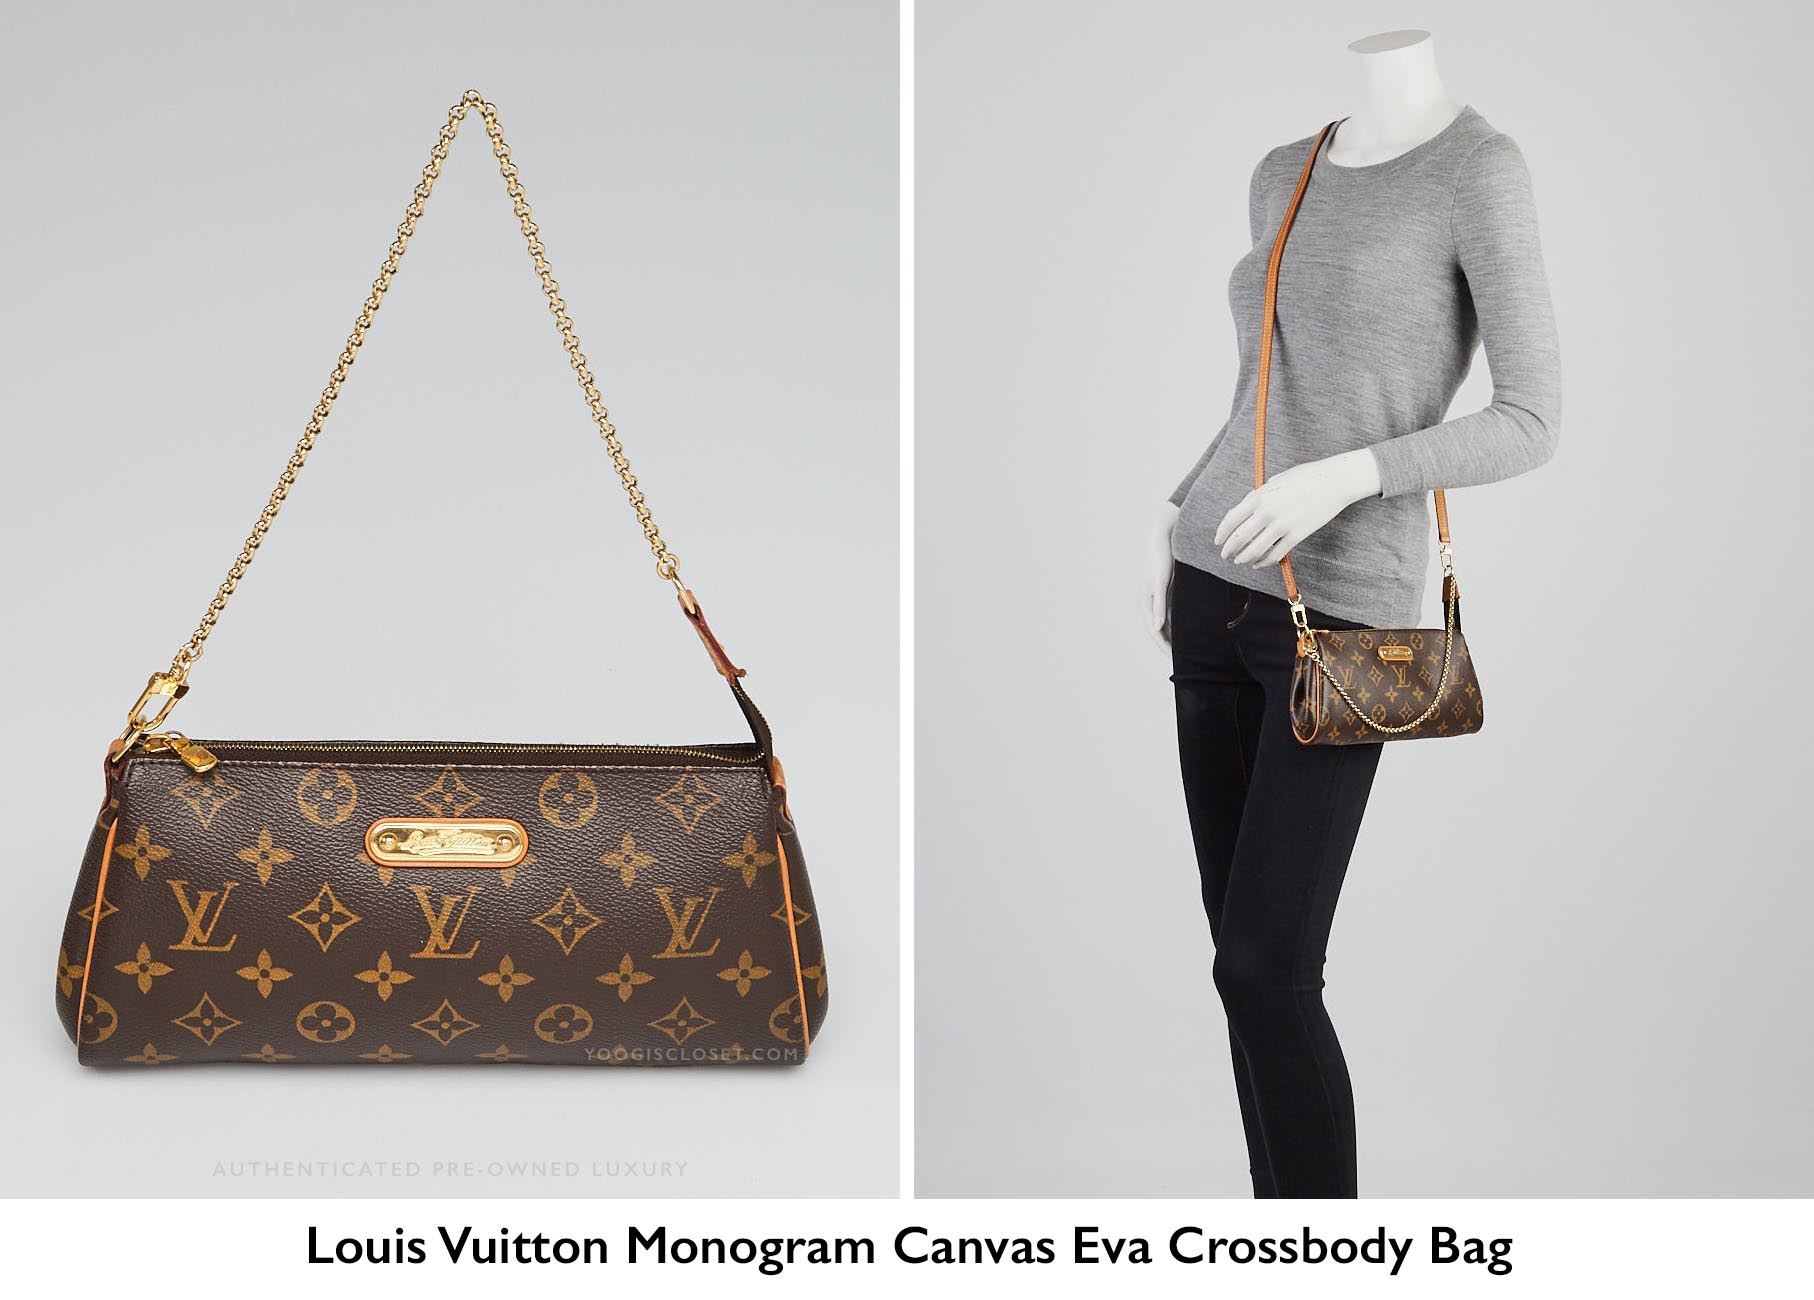 d62cc40c648d Authentic Louis Vuitton Monogram Canvas Eva Clutch Crossbody Bag